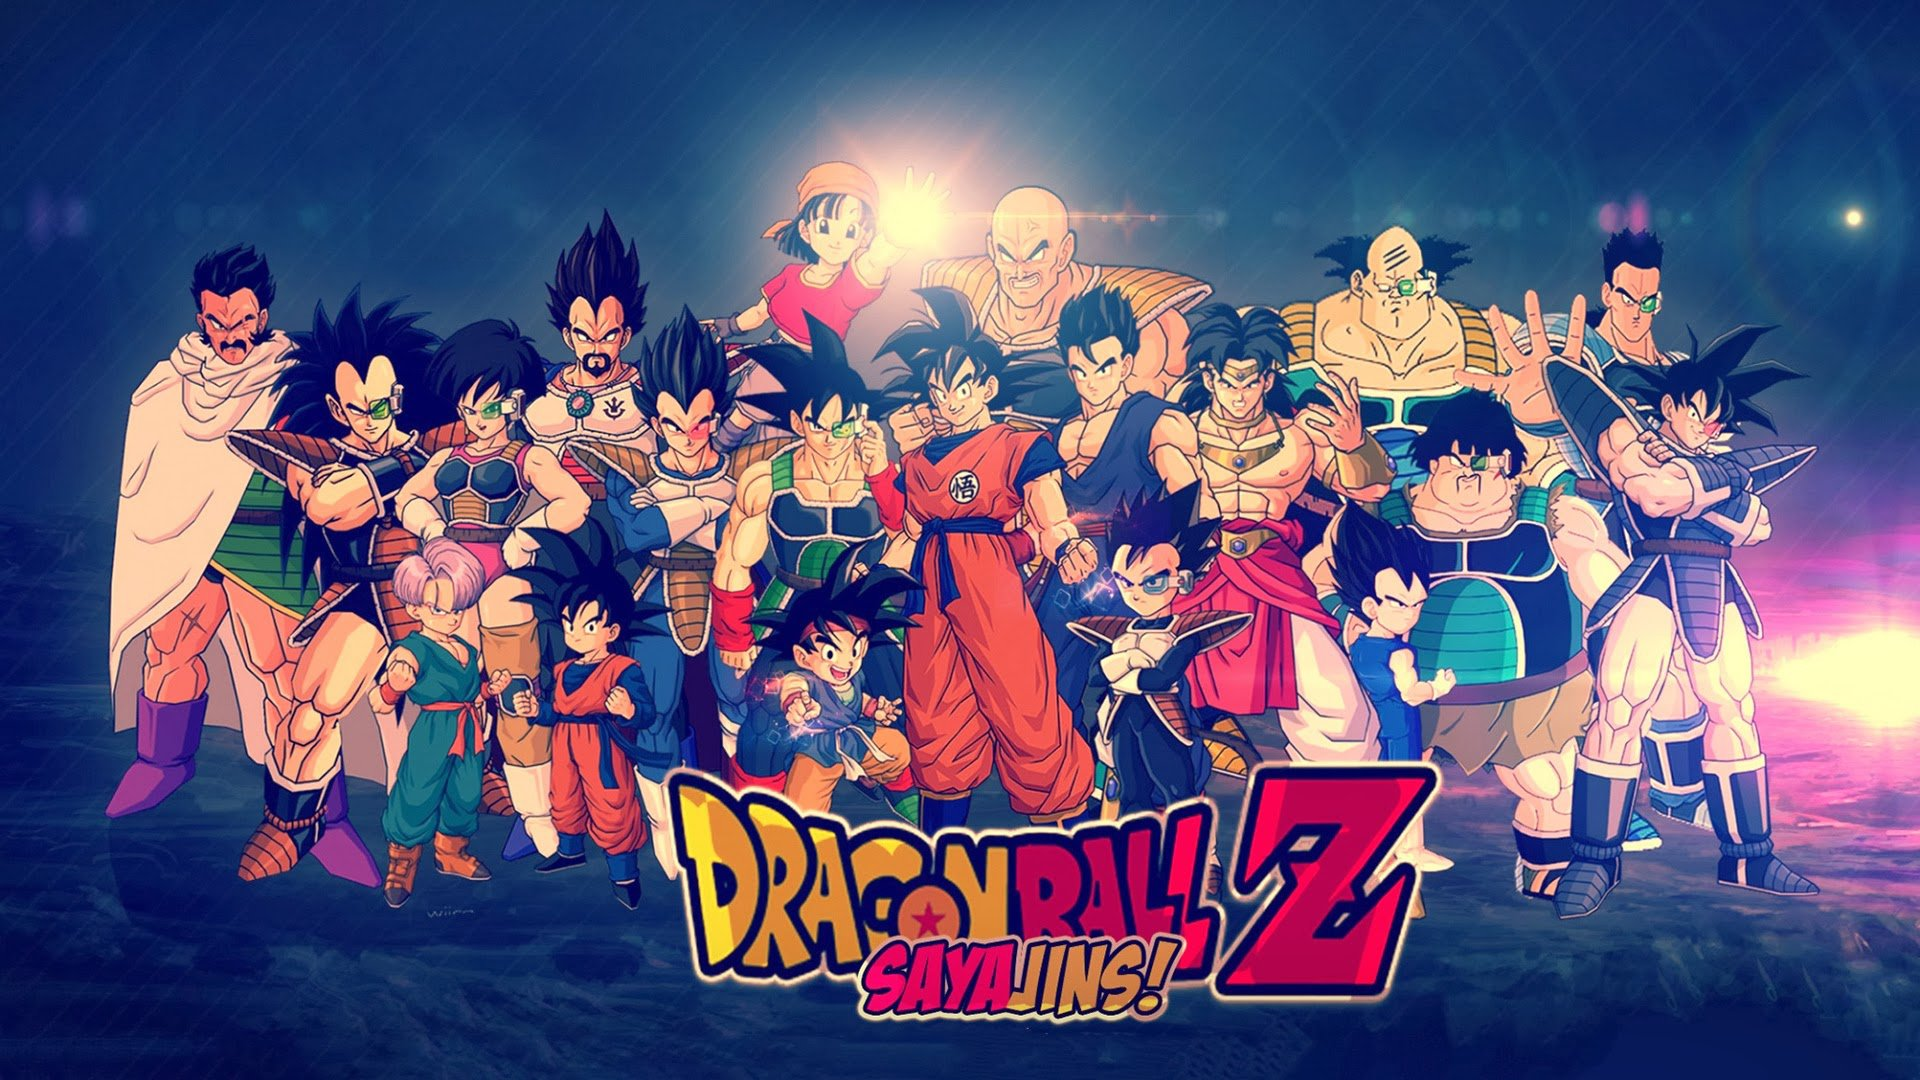 Dragon Ball Z Sayajins Hd Wallpaper Background Image 1920x1080